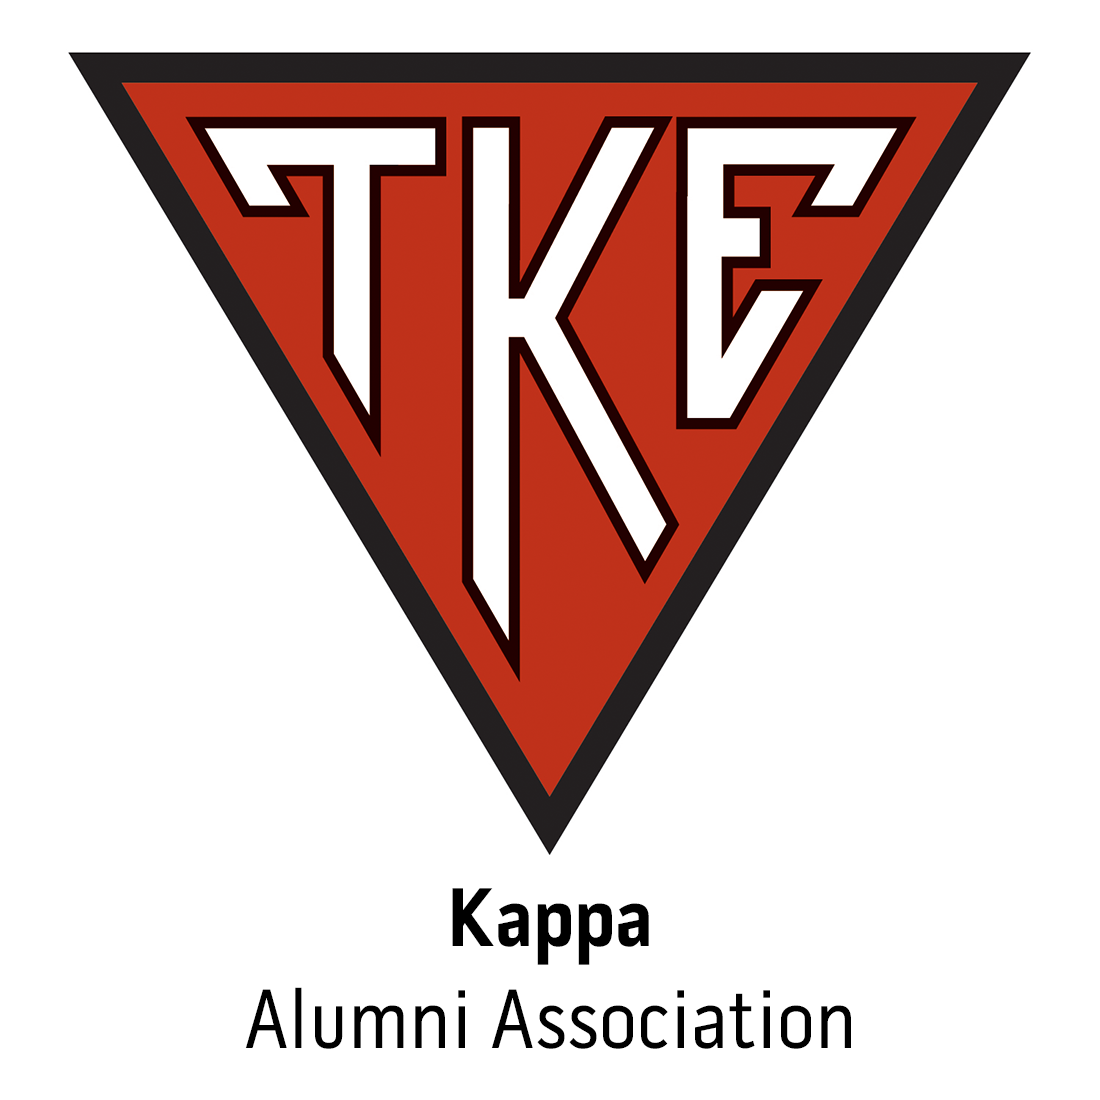 Kappa Alumni Association for Beloit College